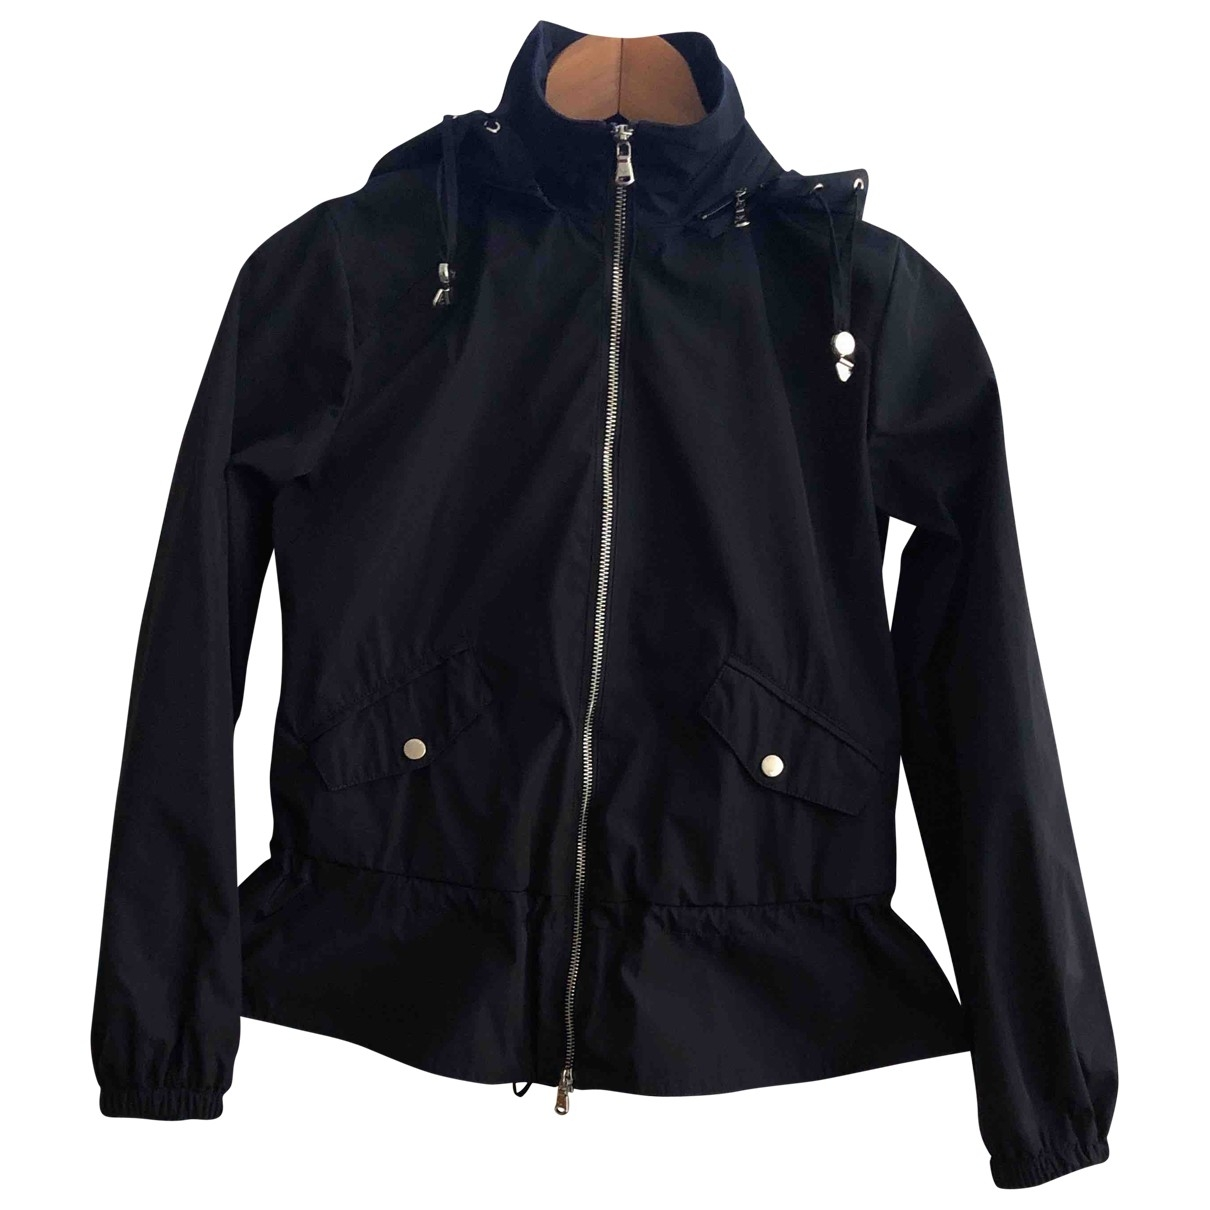 Emporio Armani \N Navy jacket for Women 40 IT